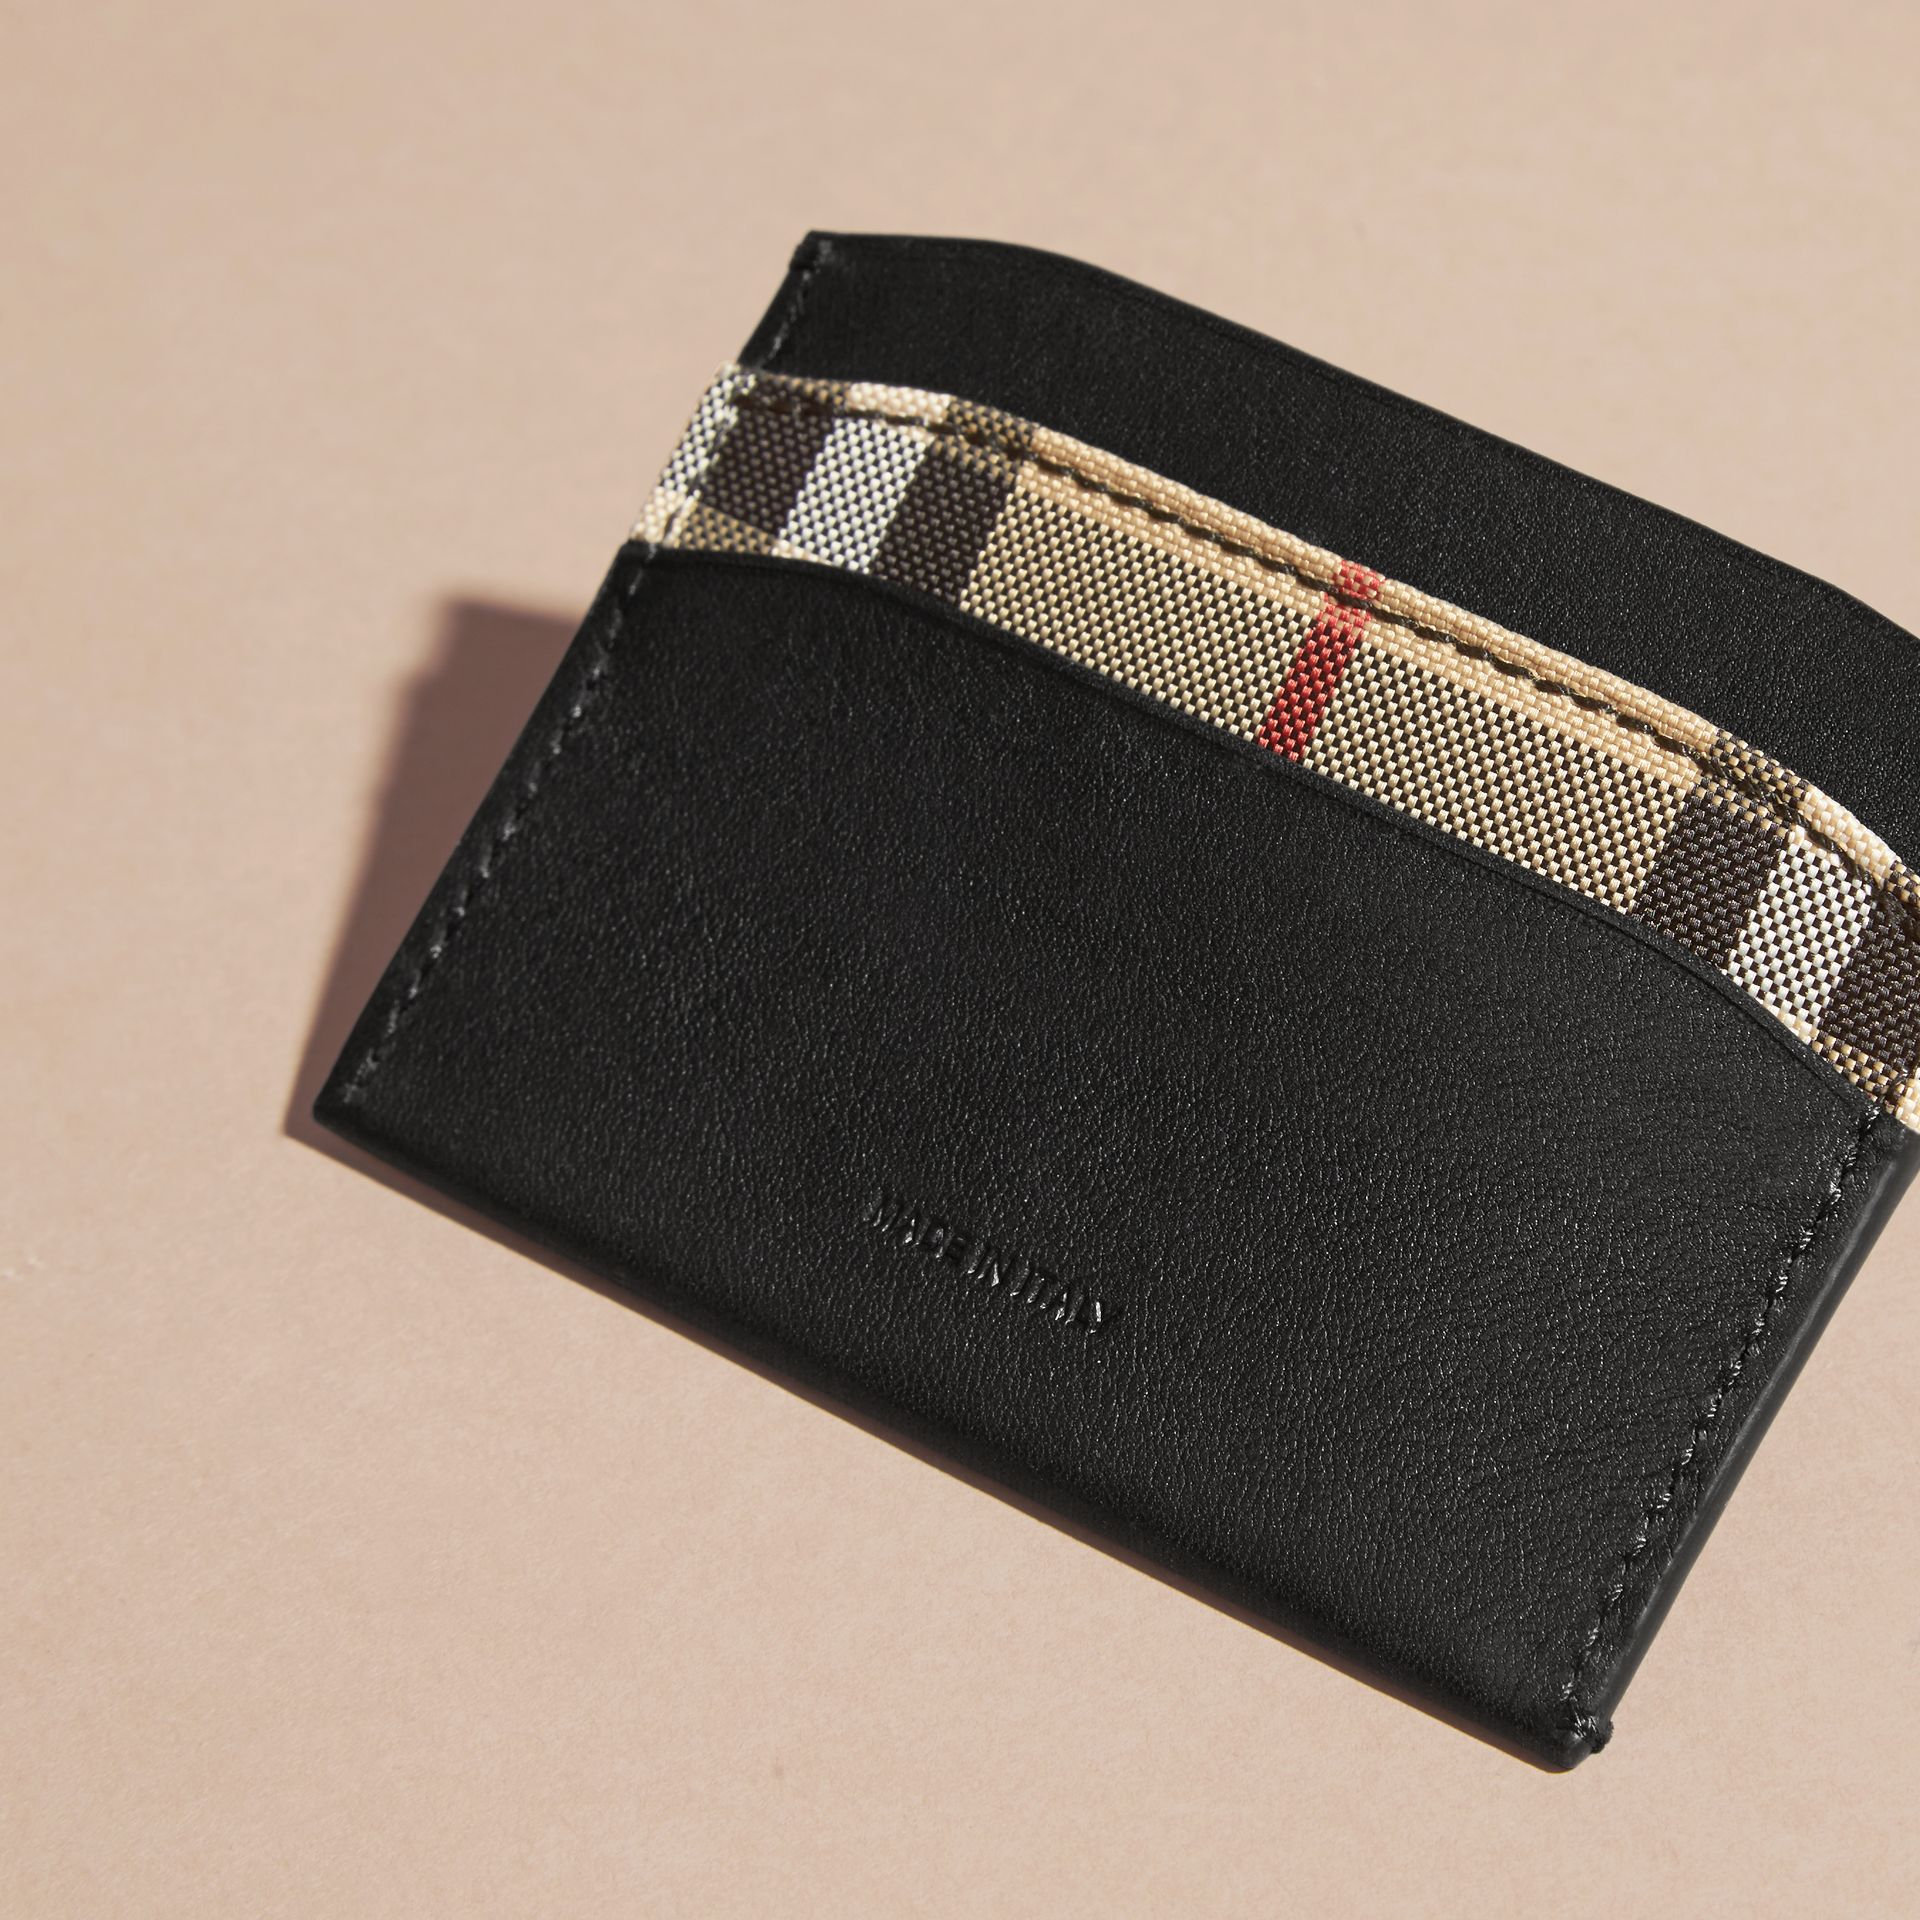 Check and Leather Card Case in Black - Women | Burberry - gallery image 3